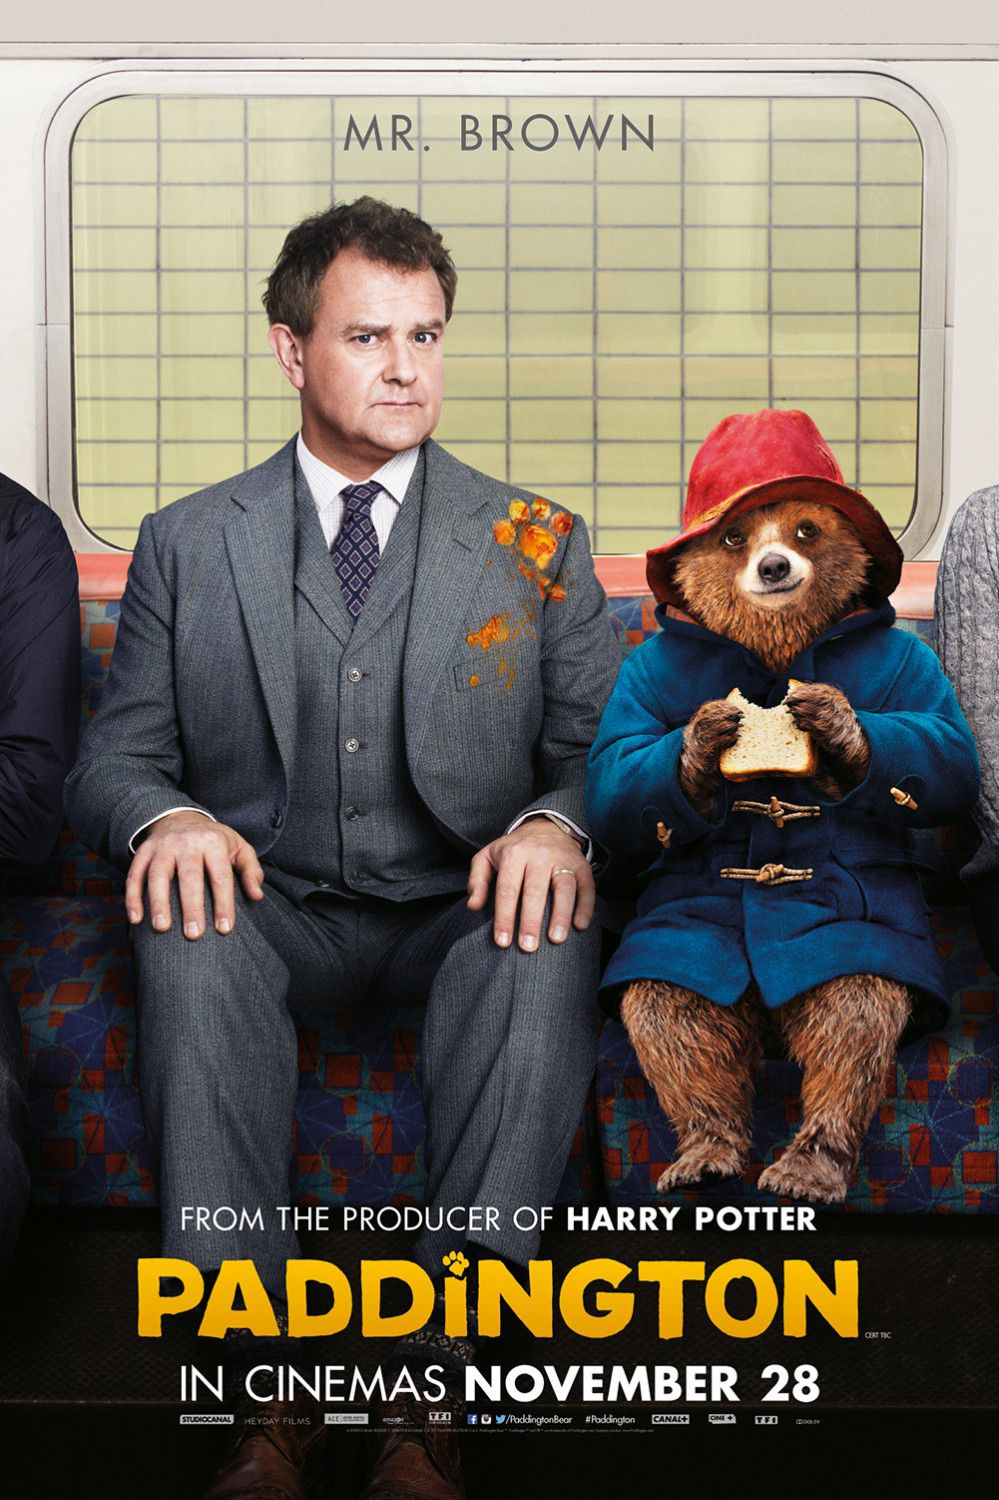 Paddington - Mr. Brown